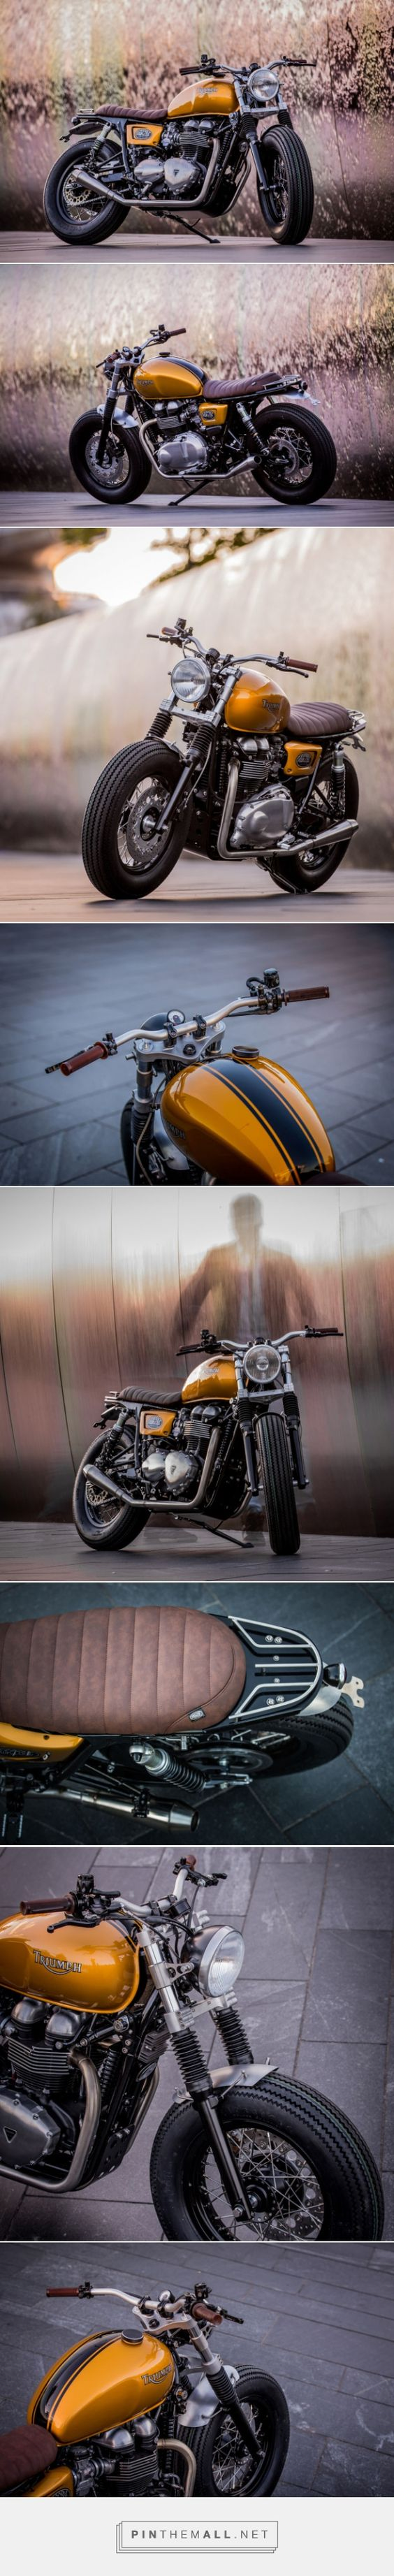 Triumph Thruxton by Down & Out Cafe Racers | Bike EXIF - created via